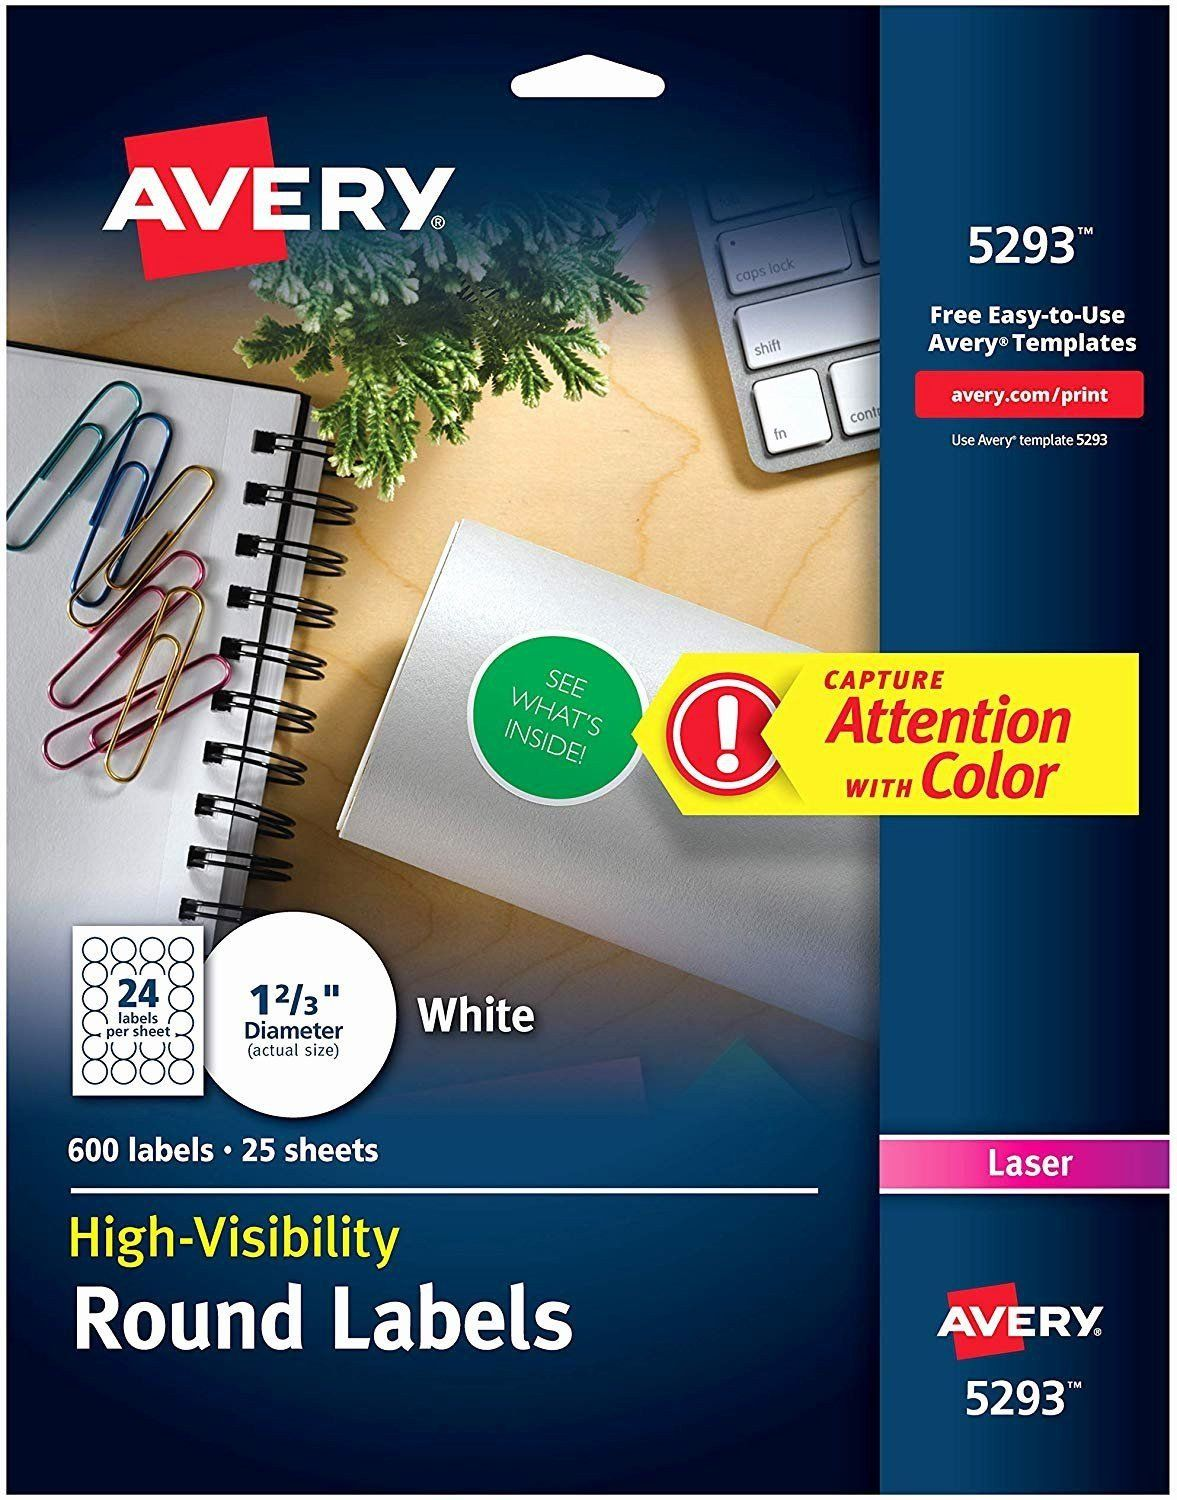 Avery 2 Round Label Template Avery 2 Round Labels Template Beautiful Avery High Label Templates Round Labels Label Printer